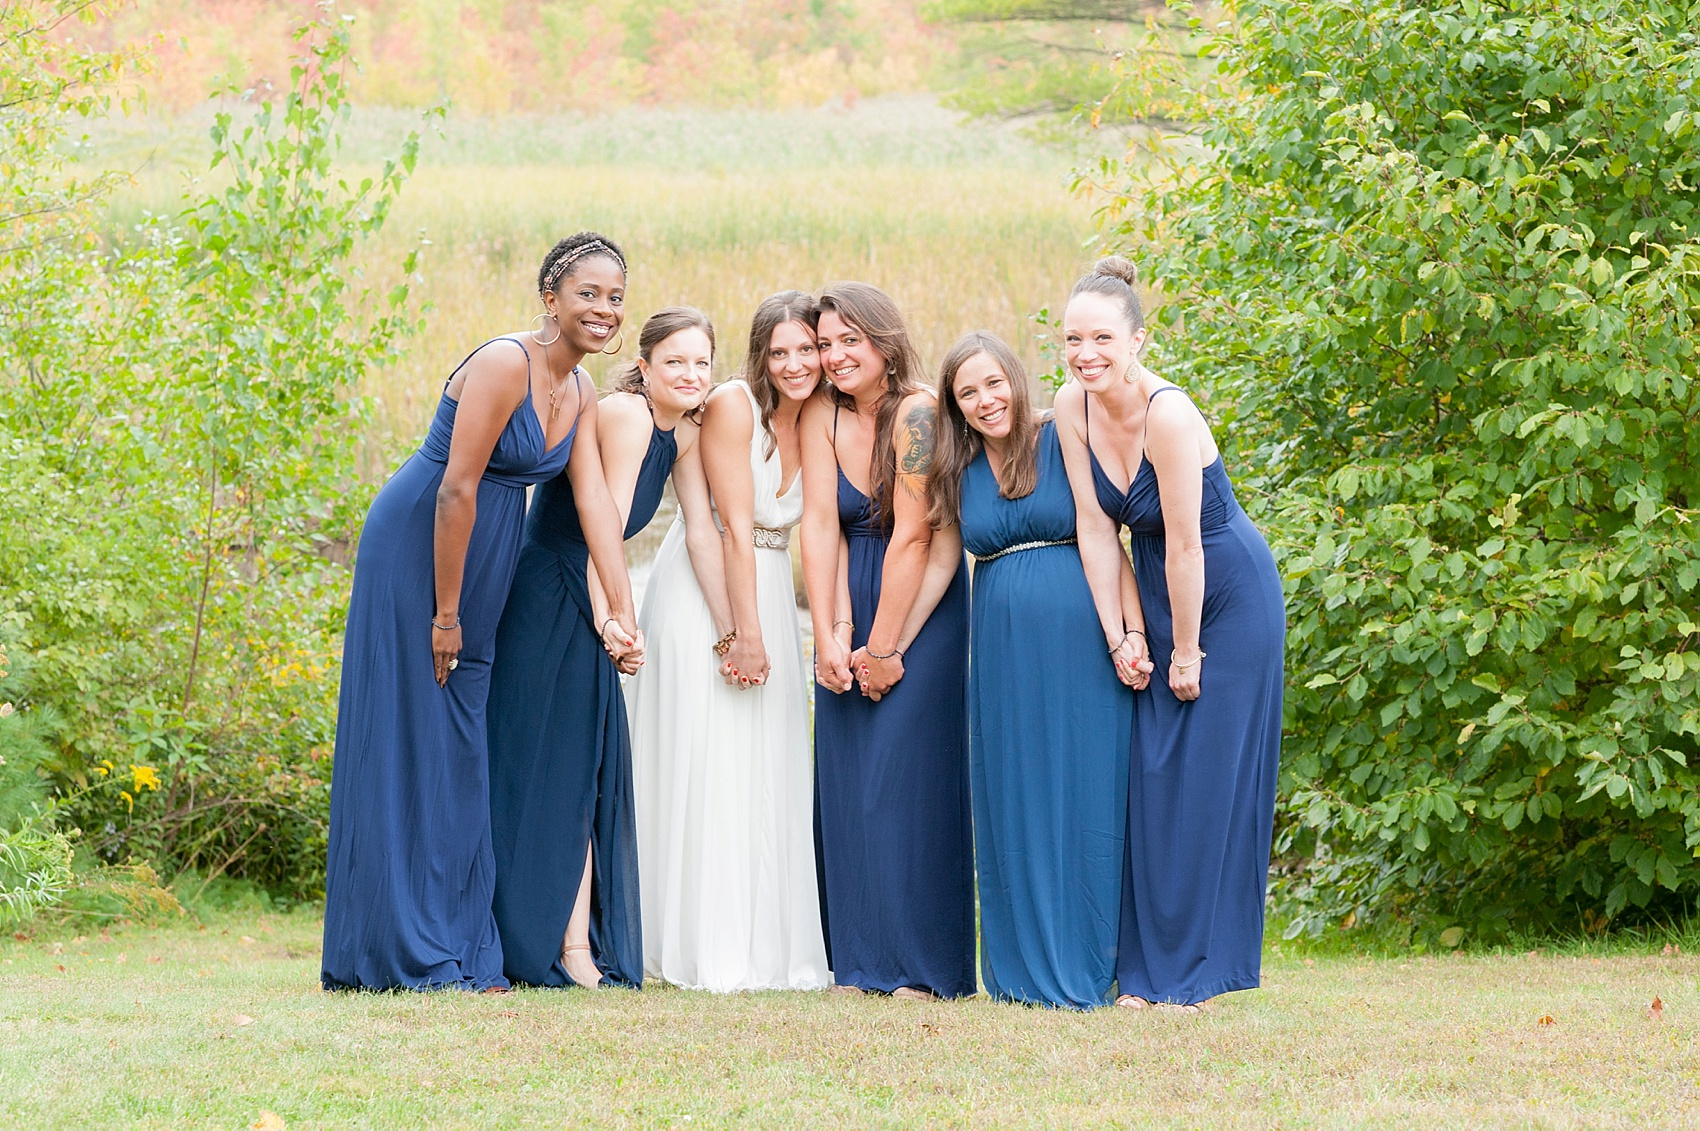 Navy bridesmaids dresses for a Massachusetts Berkshires wedding at Camp Wa Wa Segowea. Photos by Mikkel Paige Photography, destination wedding photographer.